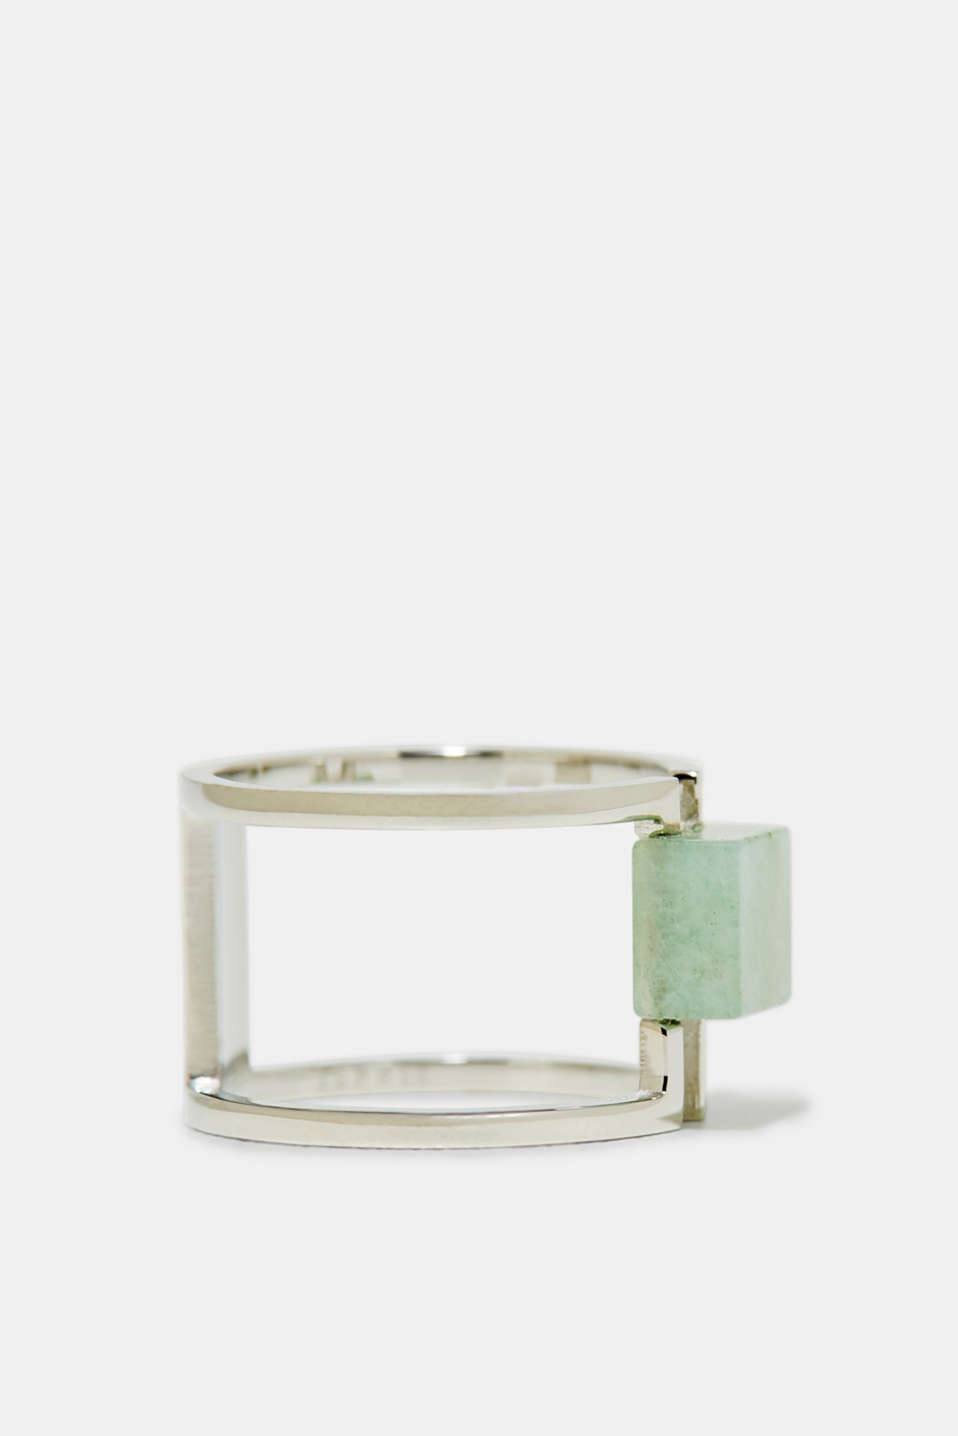 Esprit - Statement gemstone ring in stainless steel